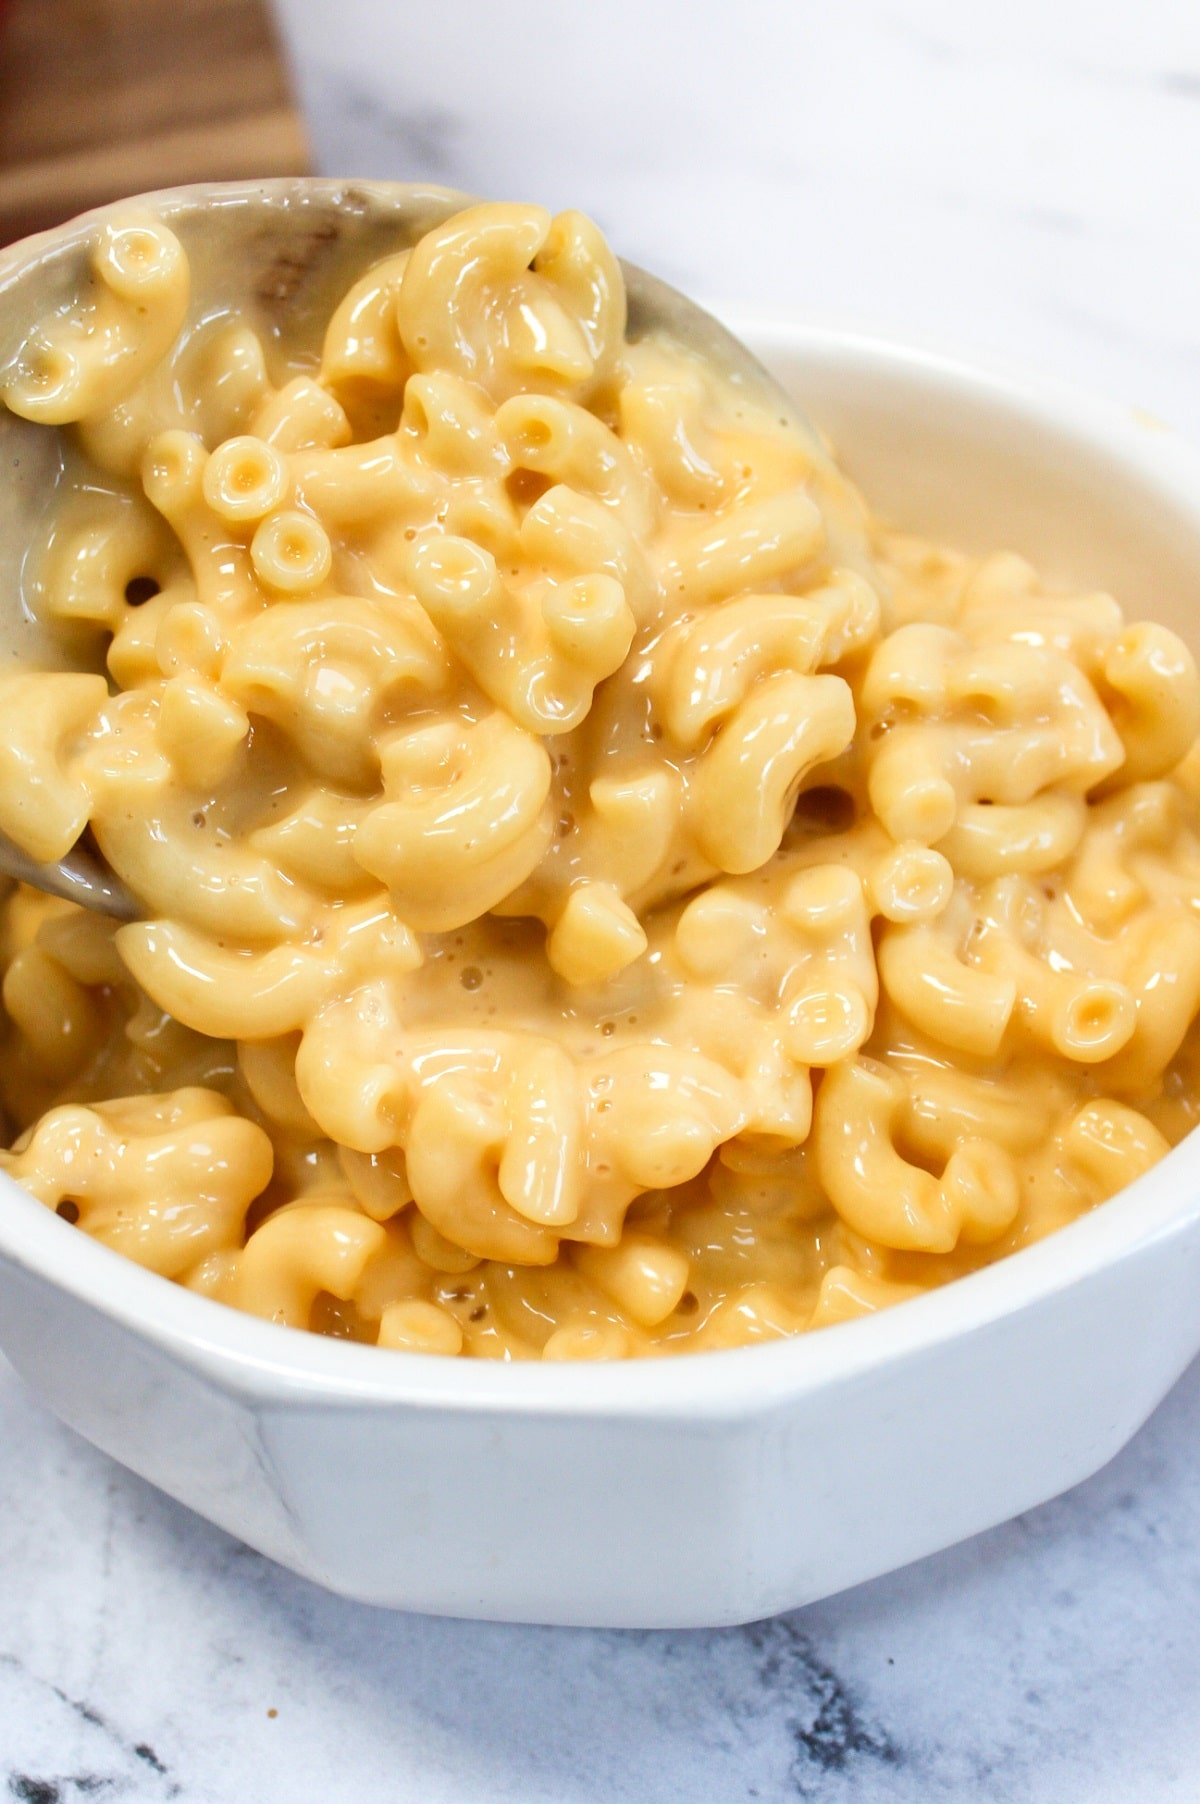 one-pot stove top mac and cheese put into a white bowl from a wooden spoon